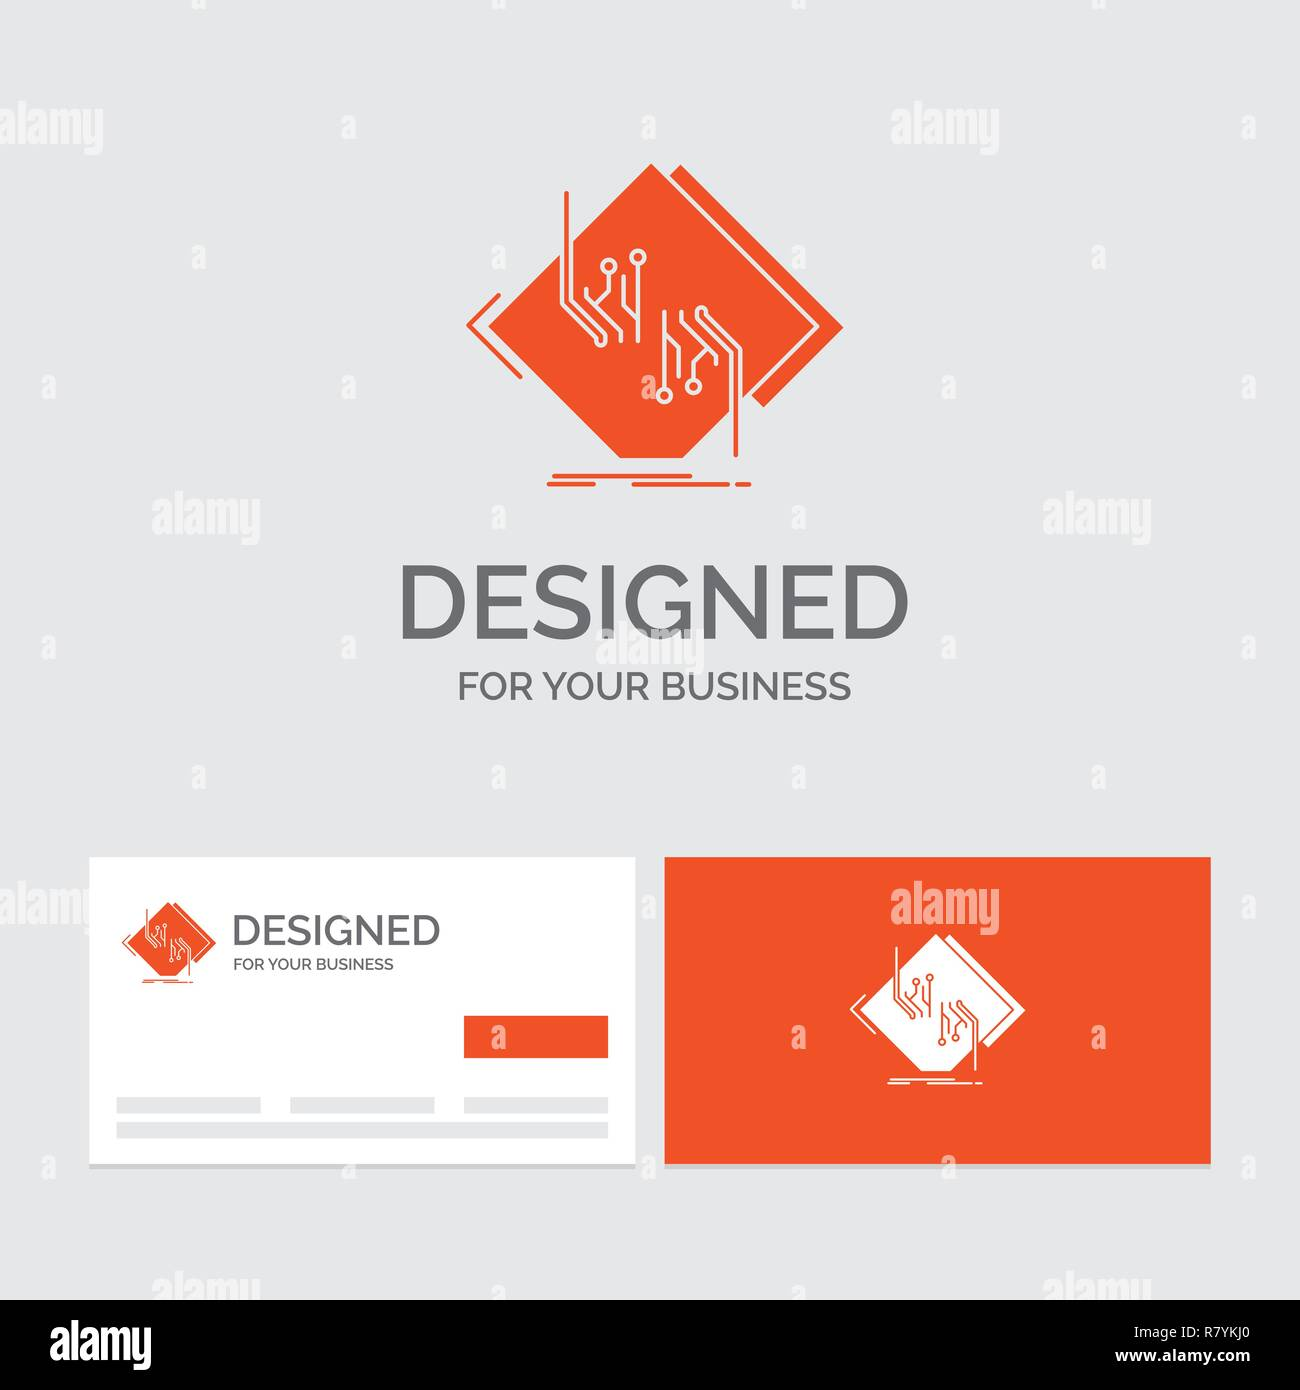 Business logo template for Board, chip, circuit, network, electronic. Orange Visiting Cards with Brand logo template. - Stock Image